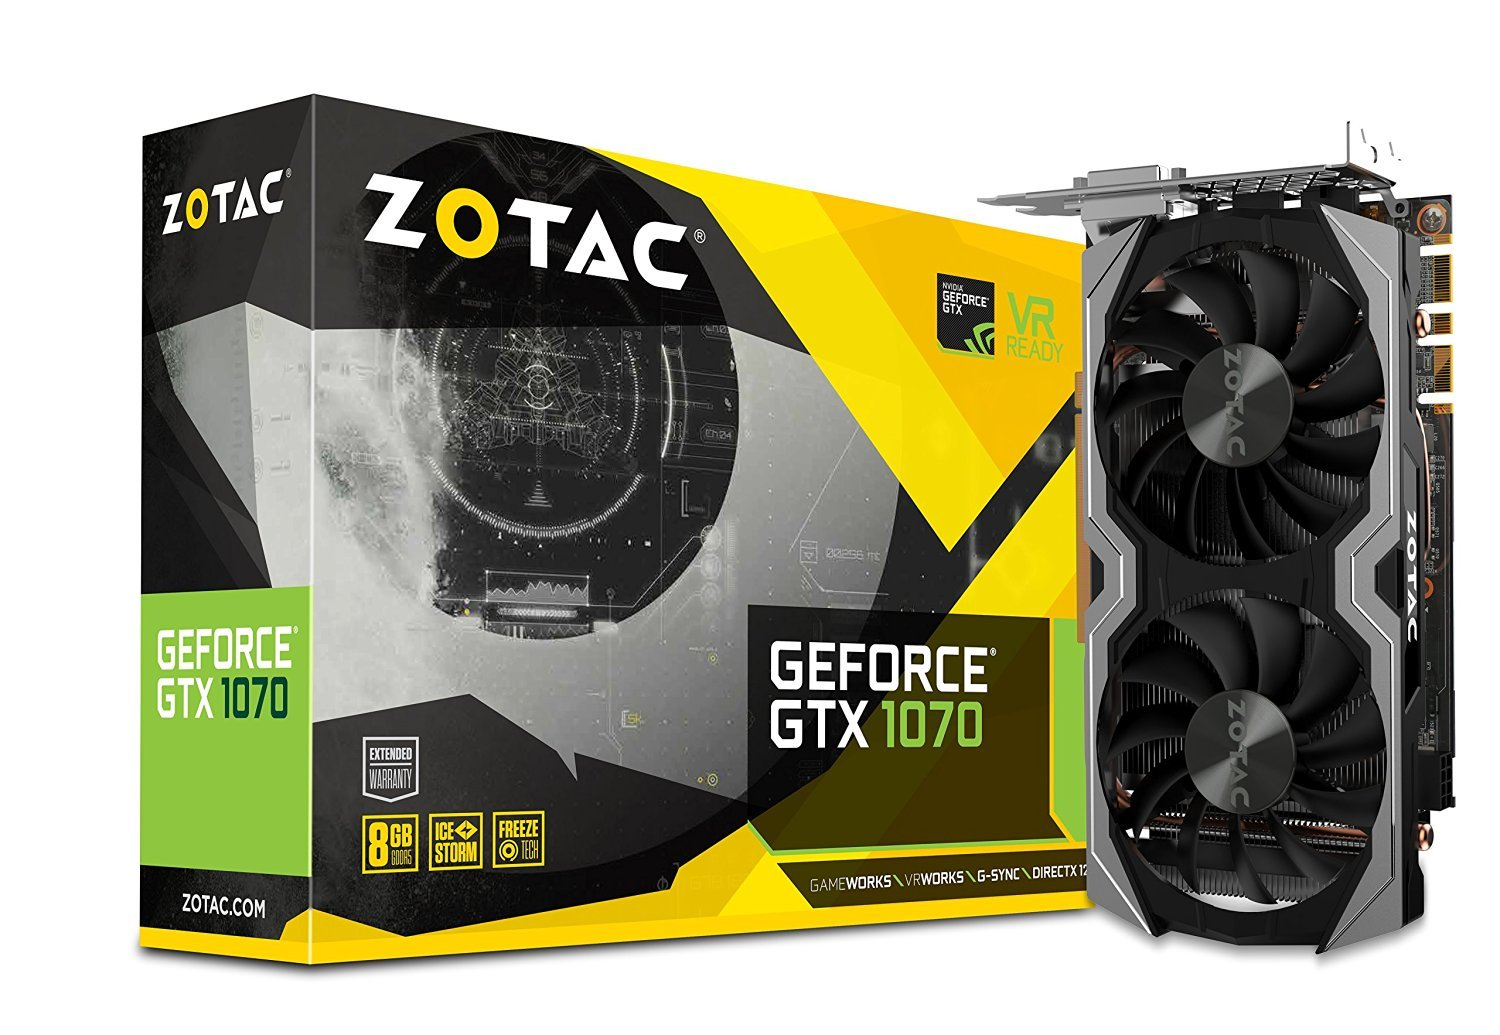 Zotac GeForce GTX1070 Mini, ZT-P10700G-10M, 8GB GDDR5